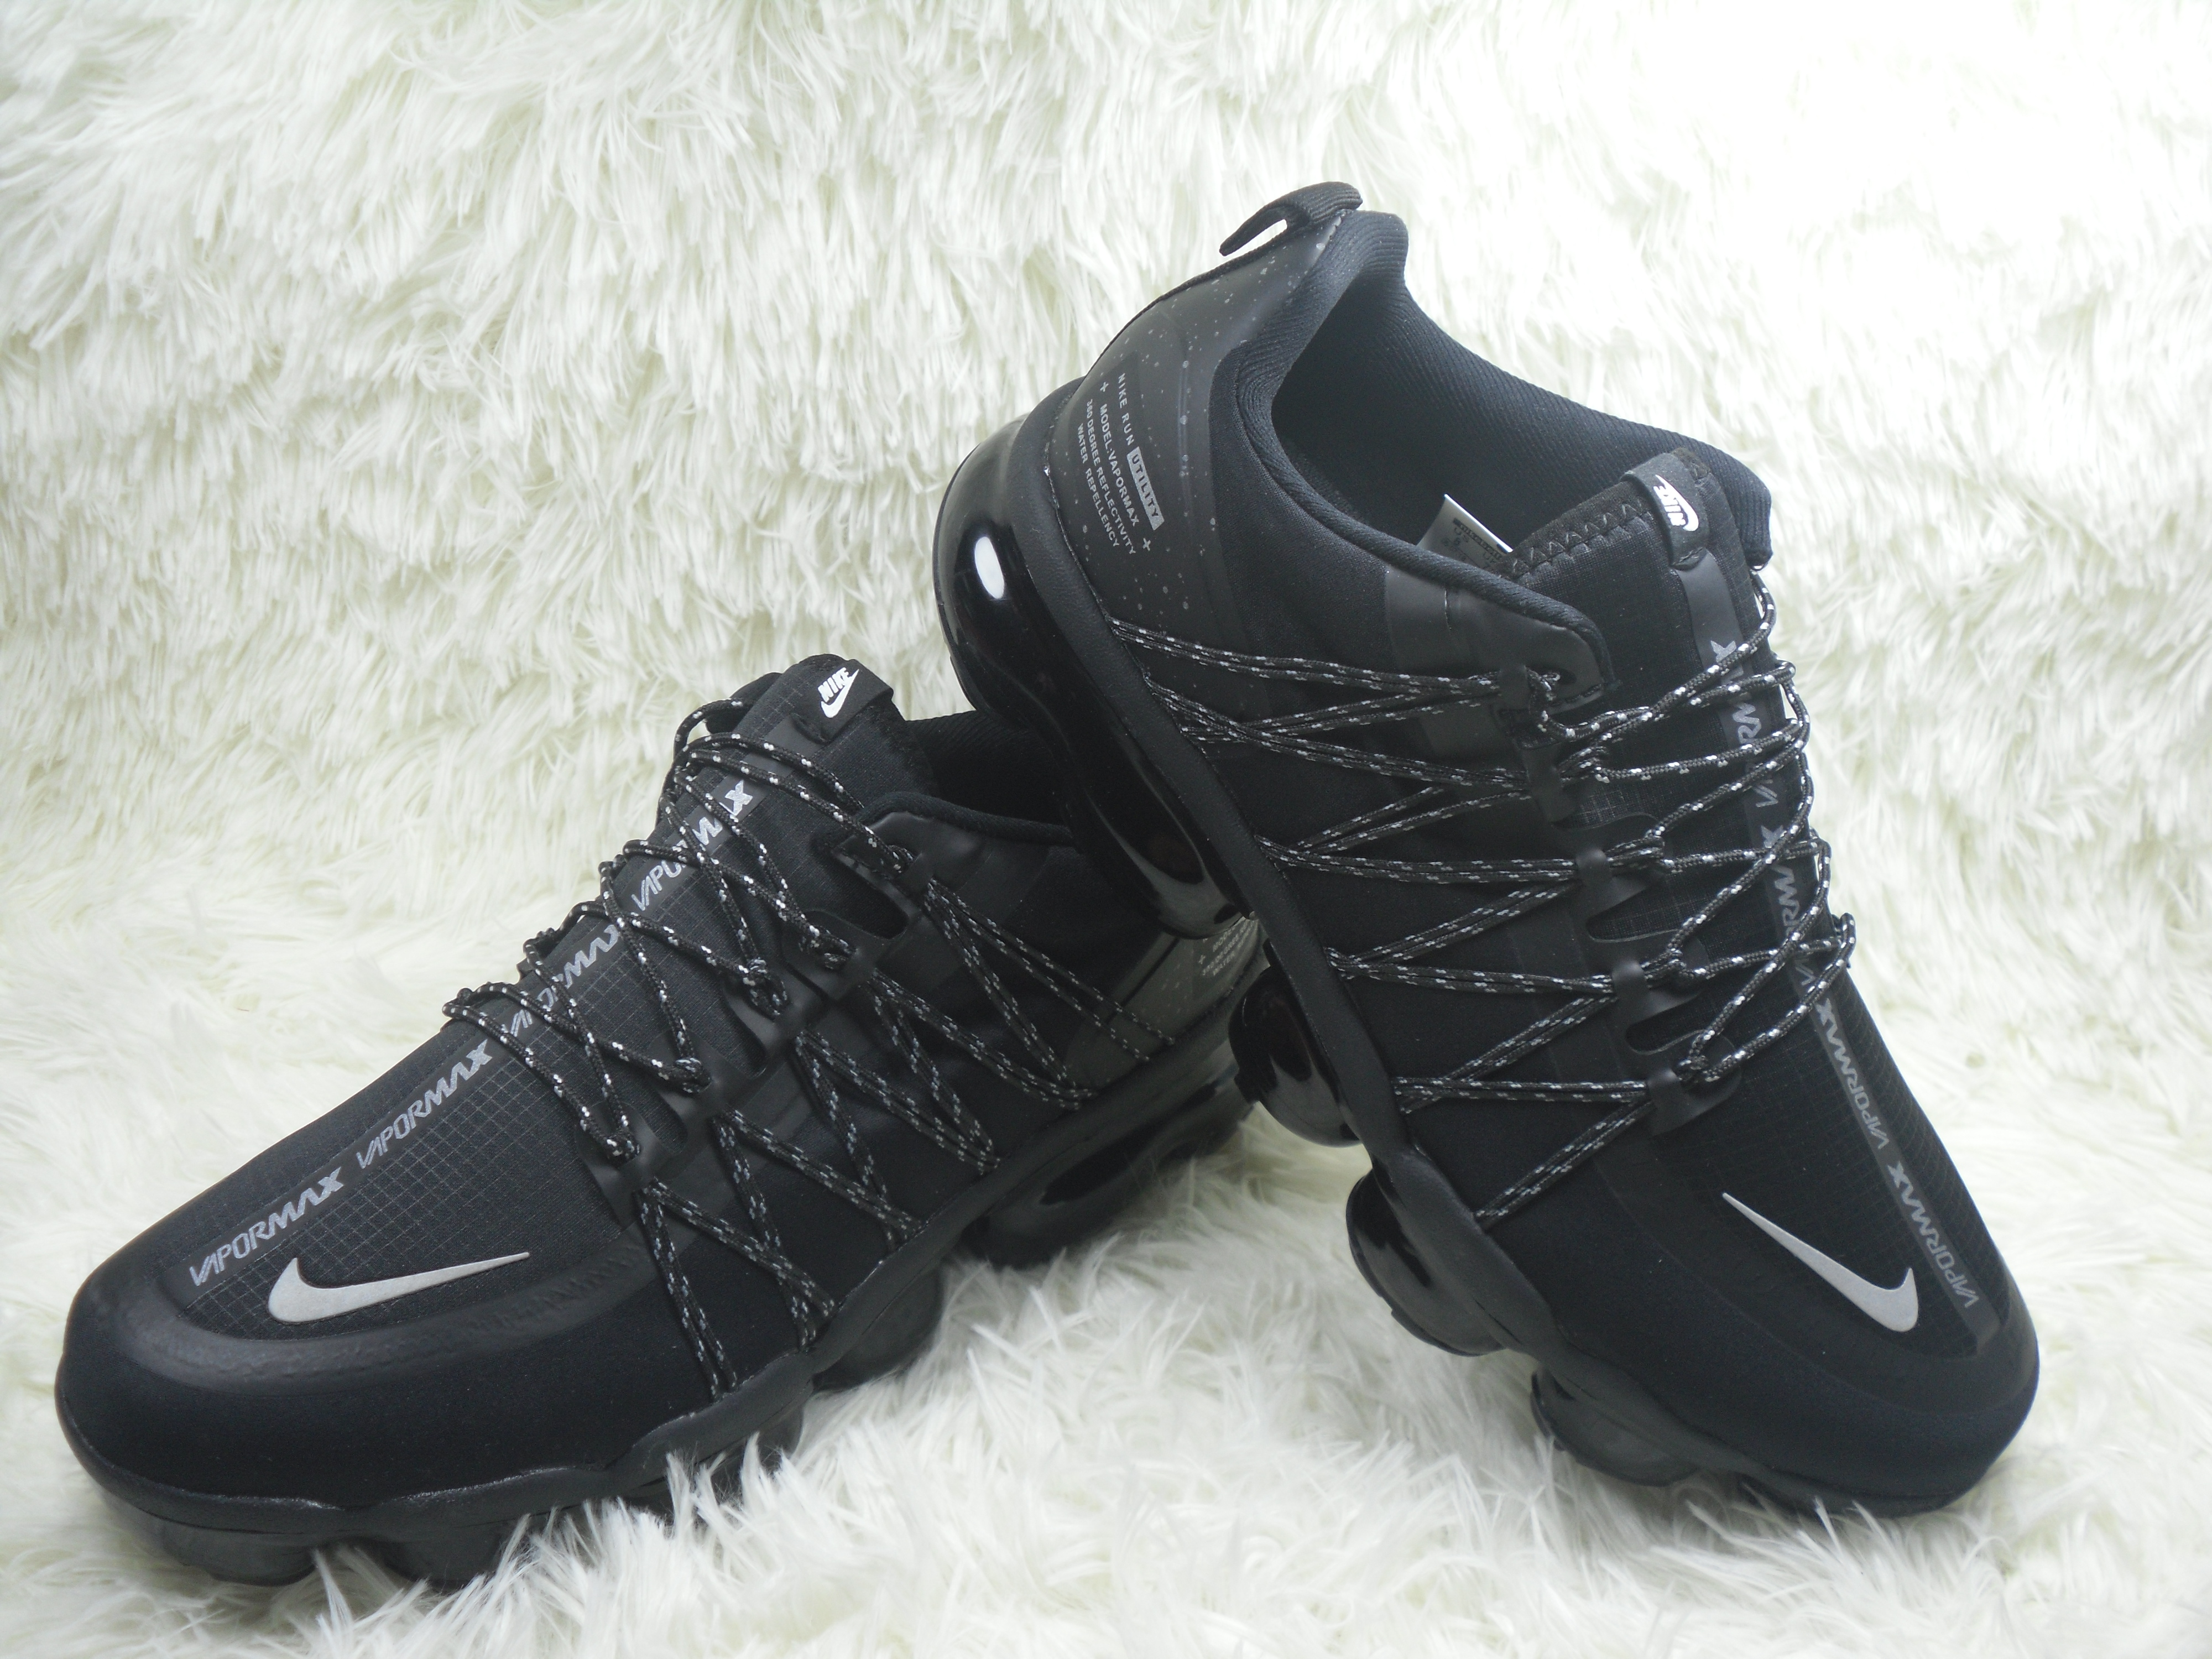 Men NIKE SP W NIKE AIR VAPORMAX RUN UTLTY Black White Shoes